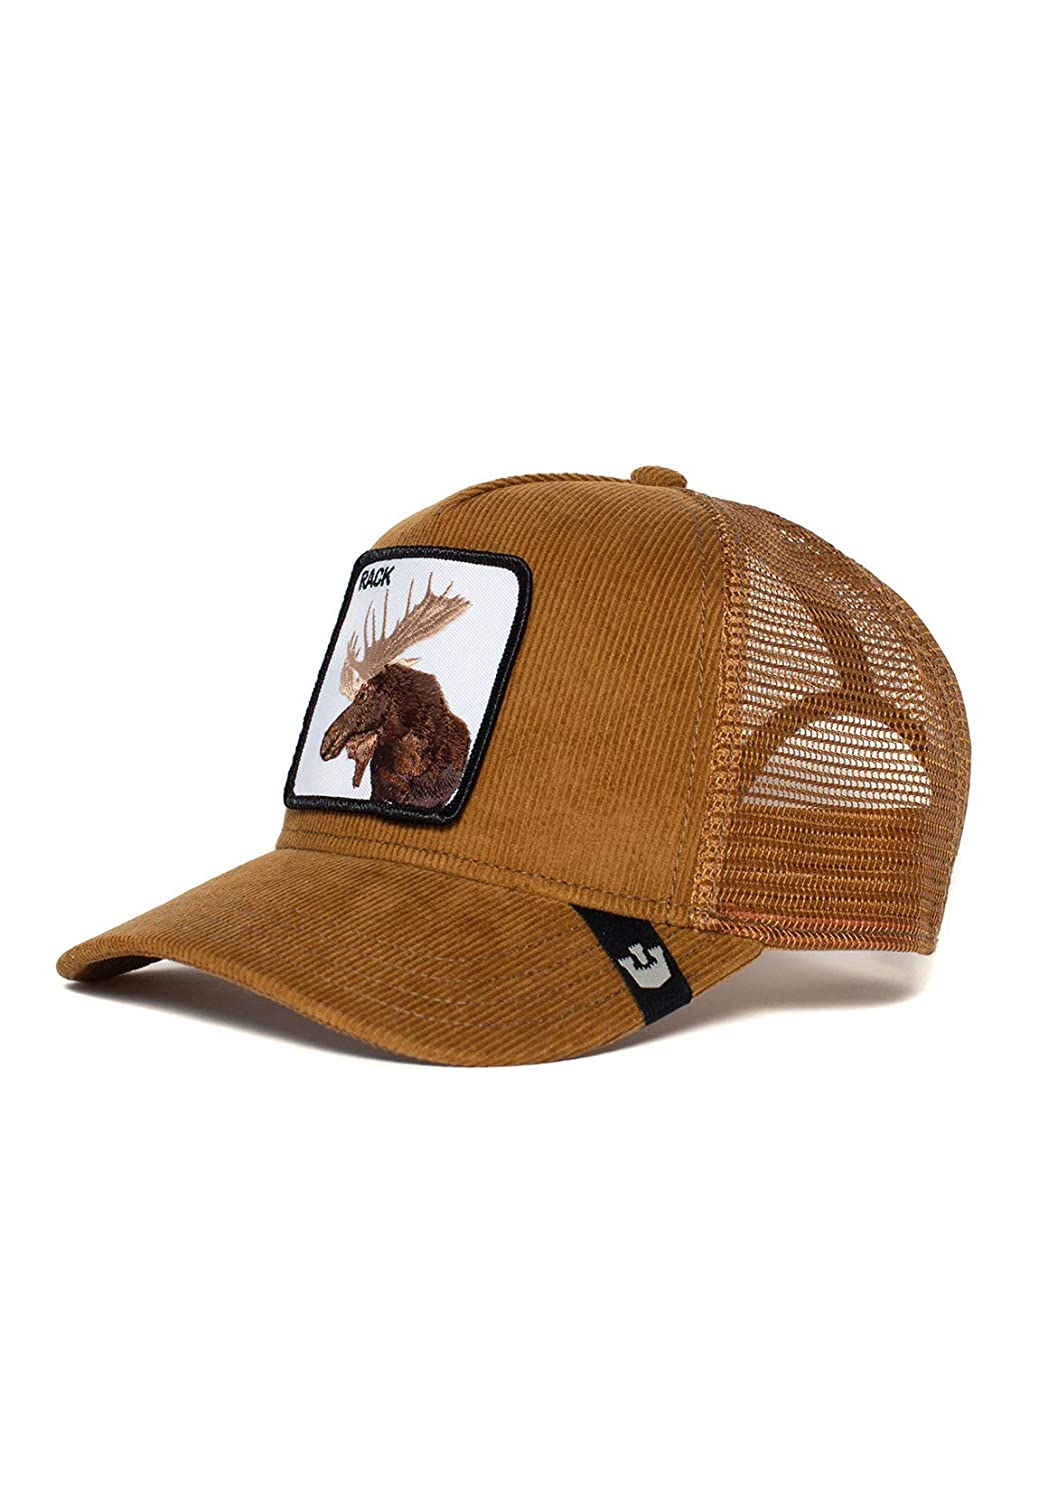 Goorin Gorra Baseball Carroyer Moose Head Wky Talla Única marrón ...